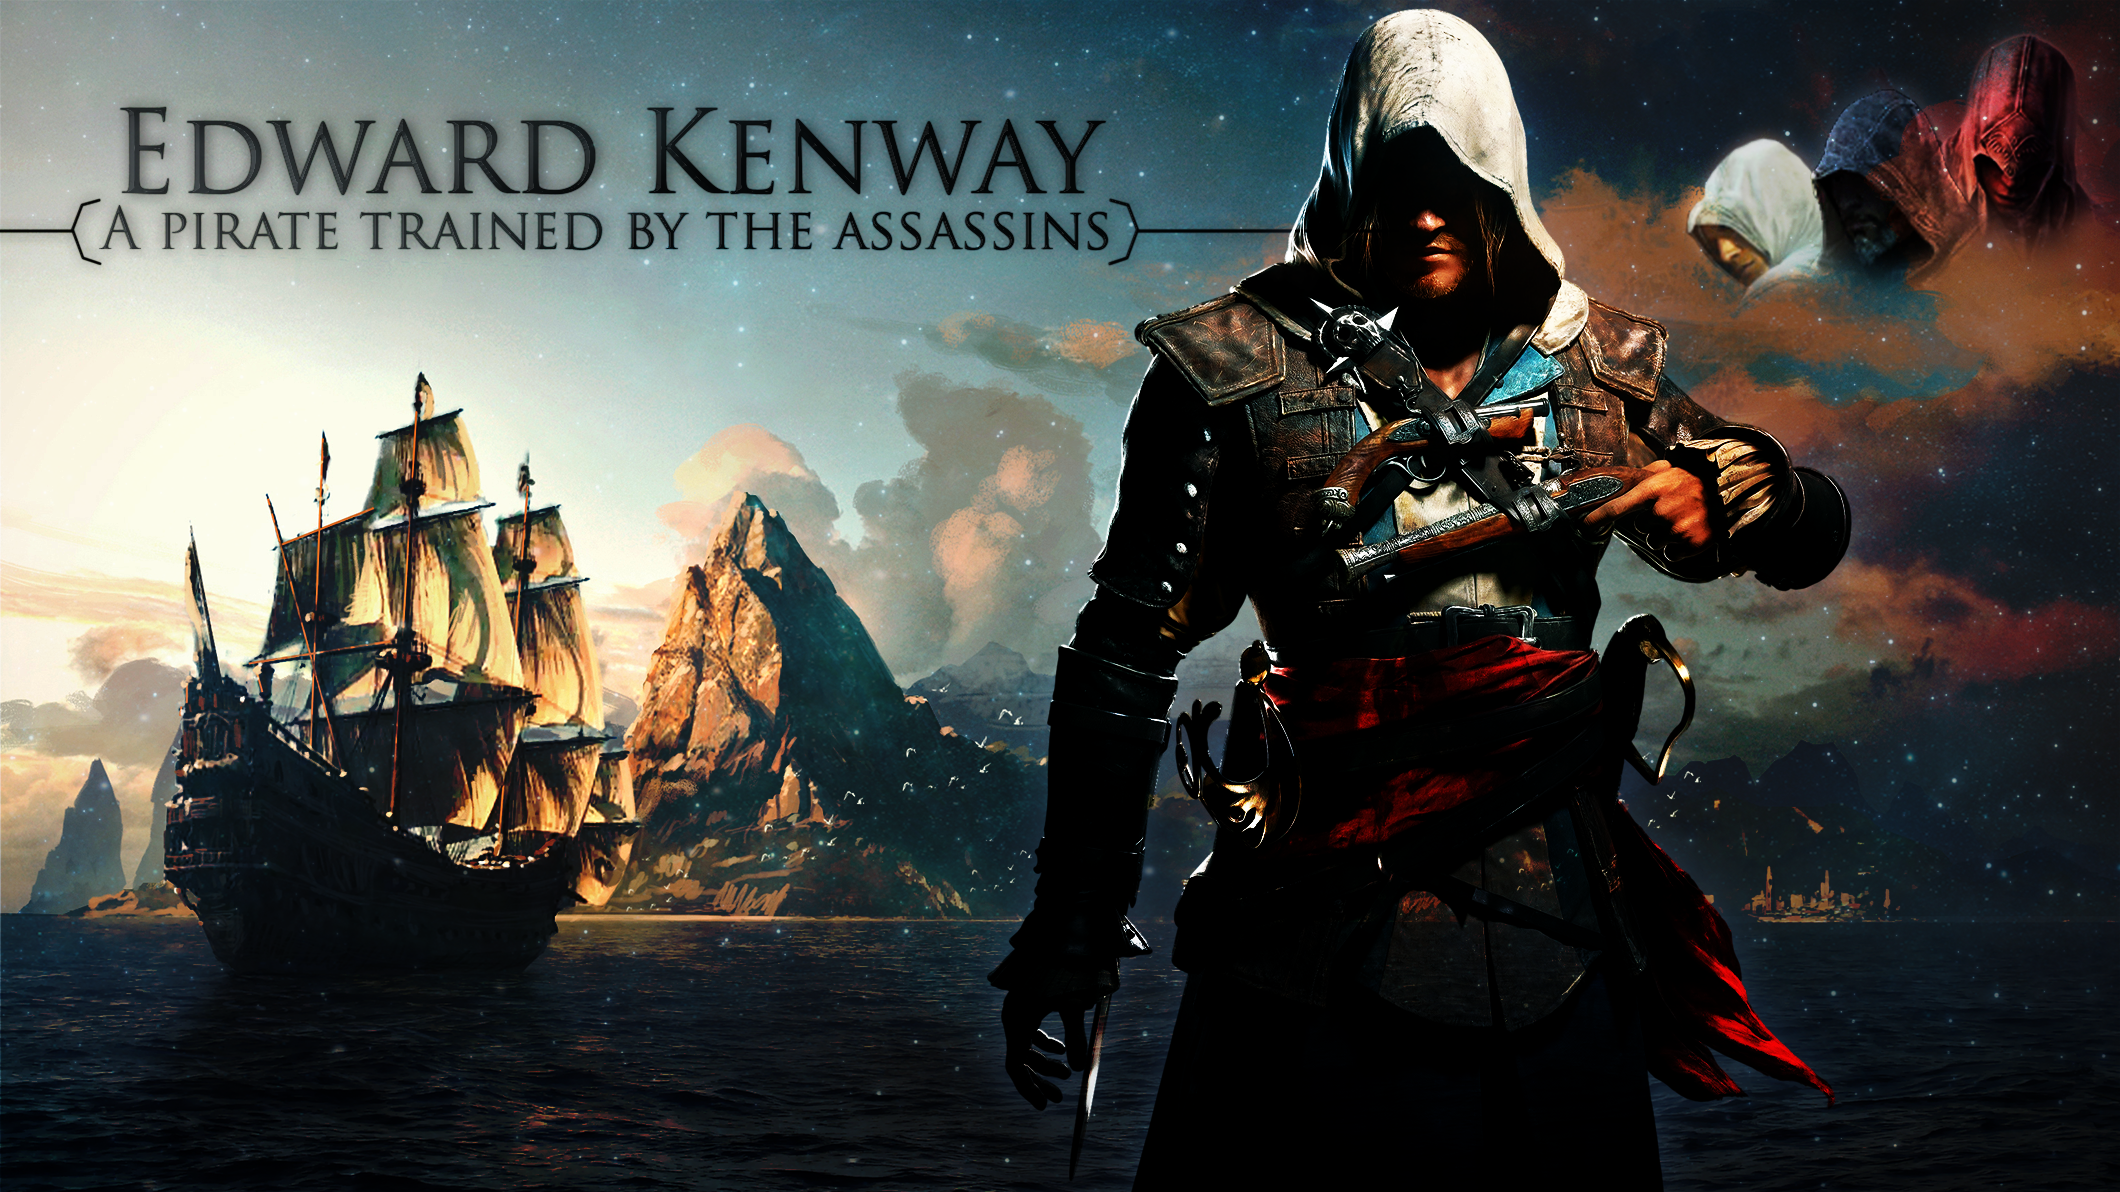 Assassins creed iv wallpaper by theeviln on deviantart assassins creed iv wallpaper by theeviln assassins creed iv wallpaper by theeviln voltagebd Choice Image